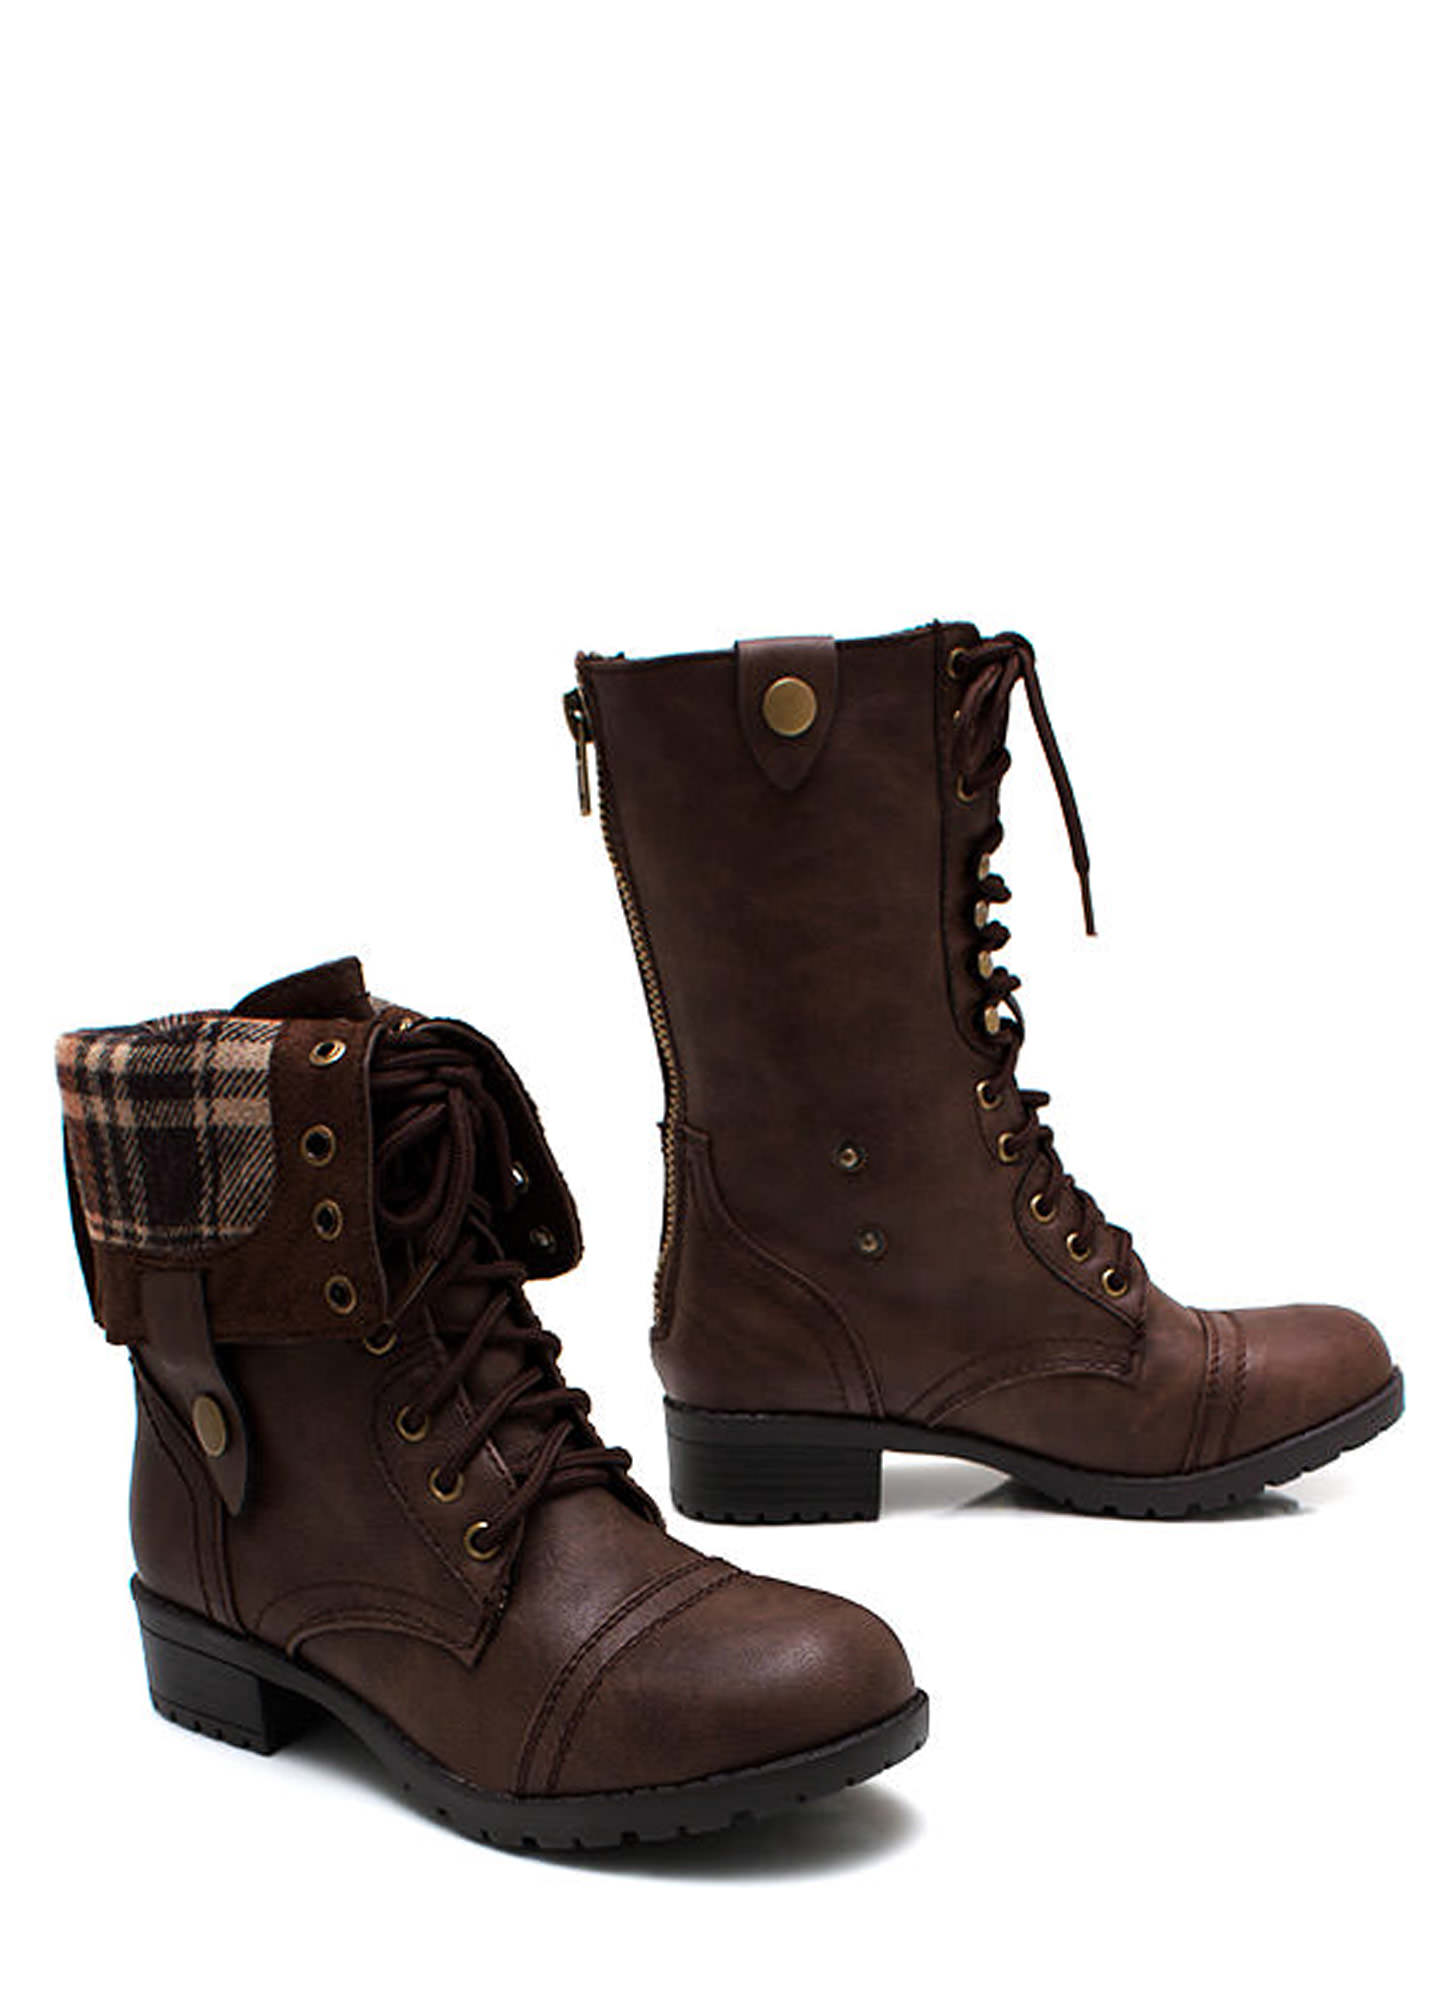 brown combat boots women outfit with popular inspiration